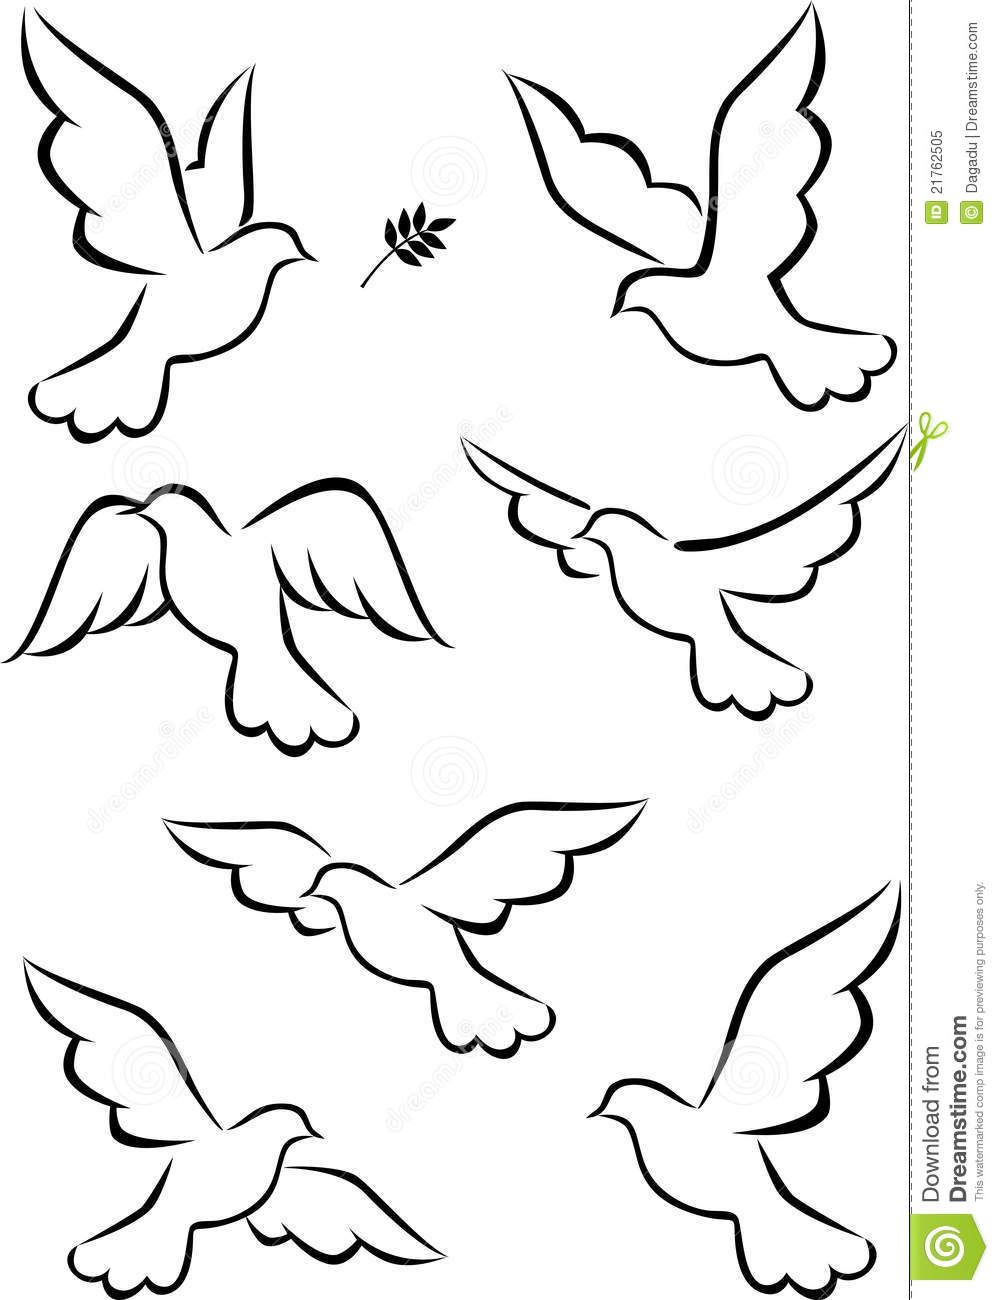 dove-symbol-21762505.jpg (999×1300) | Cu - Designs | Pinterest ...